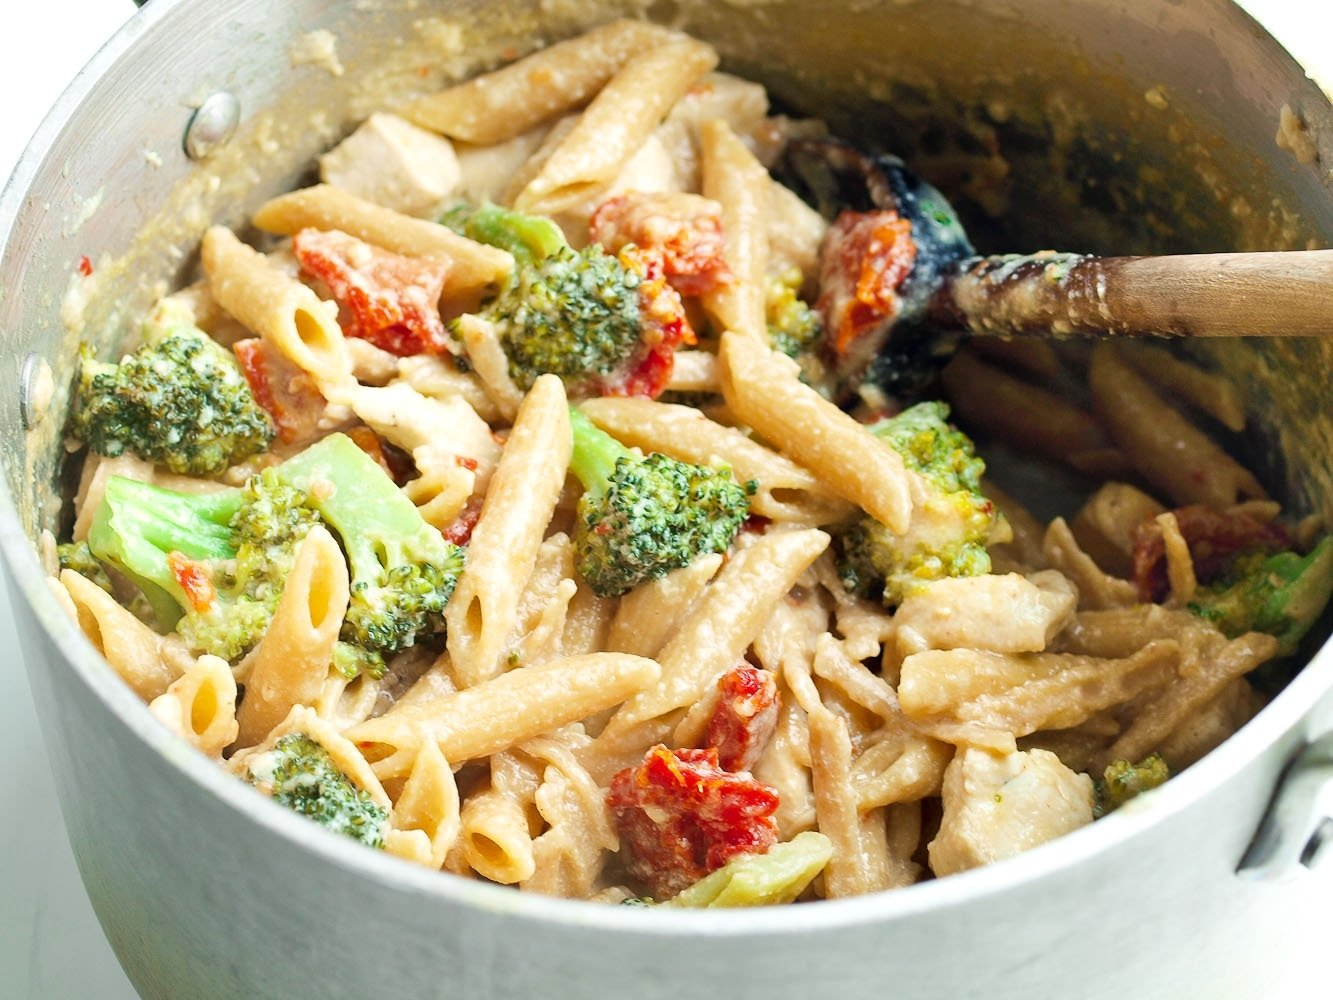 10 Fabulous Easy Meal Ideas For Dinner tangy one pot chicken and veggie pasta dinner healthy ideas for kids 4 2020